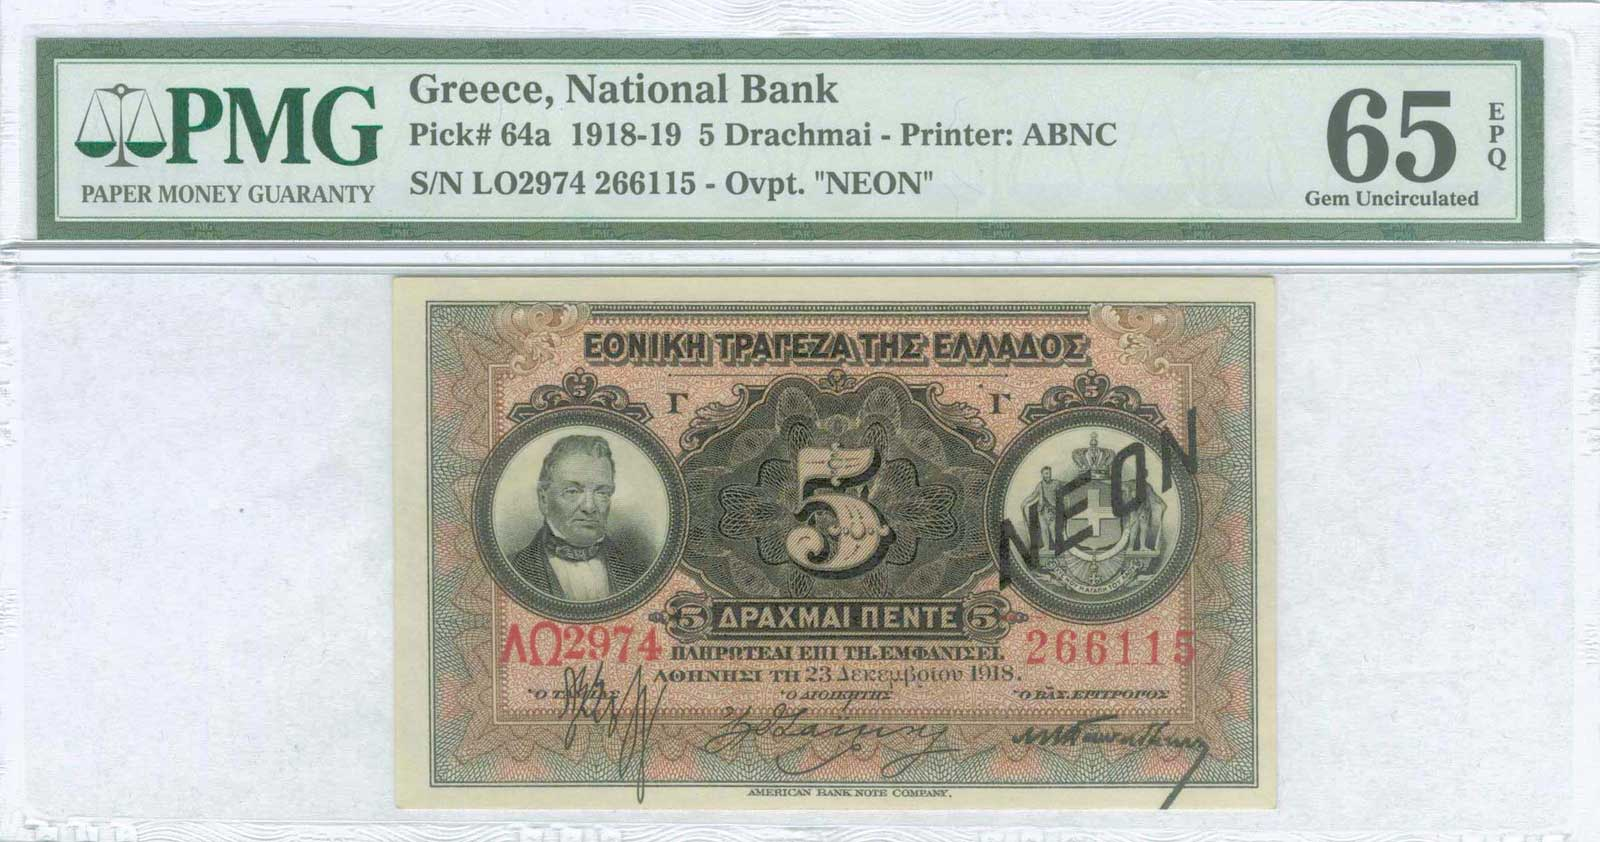 Lot 9269 - GREECE-  PAPER MONEY - BANKNOTES National Bank of Greece -  A. Karamitsos Public & LIVE Bid Auction 610 Coins, Medals & Banknotes